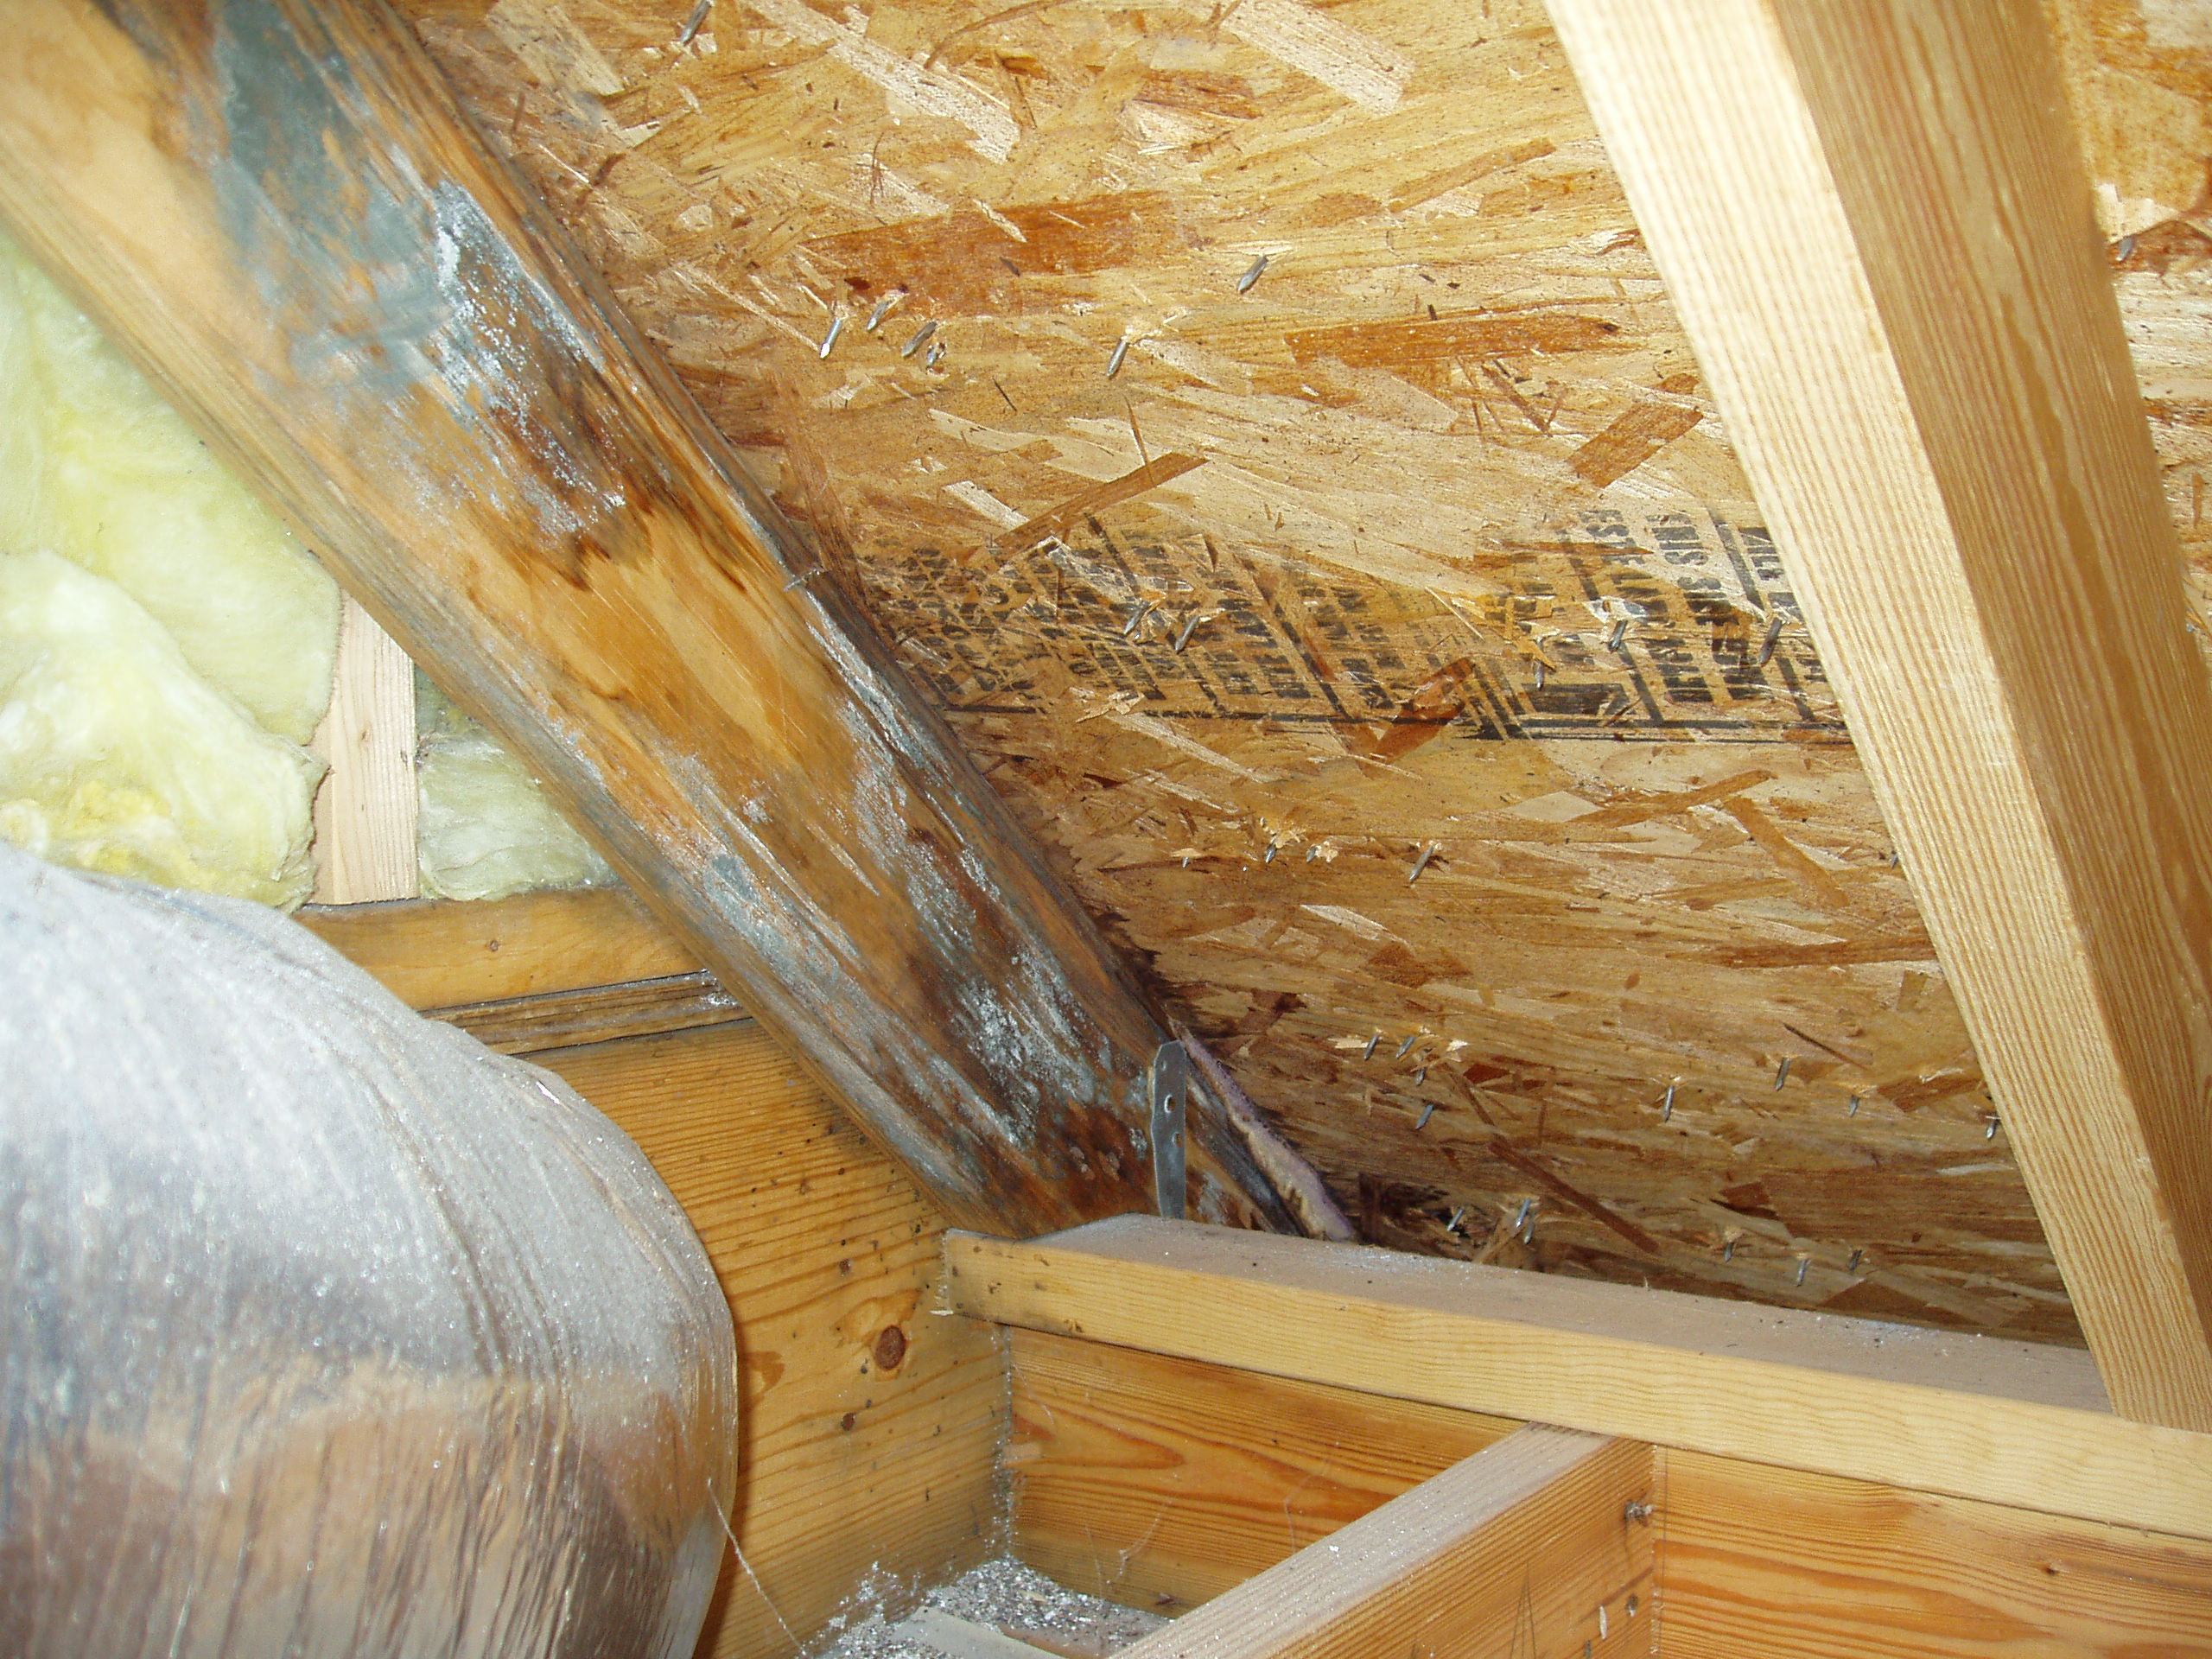 Dealing With Attic Mold Mold Removal Portland Oregon : sublime directory attic  - Aeropaca.Org